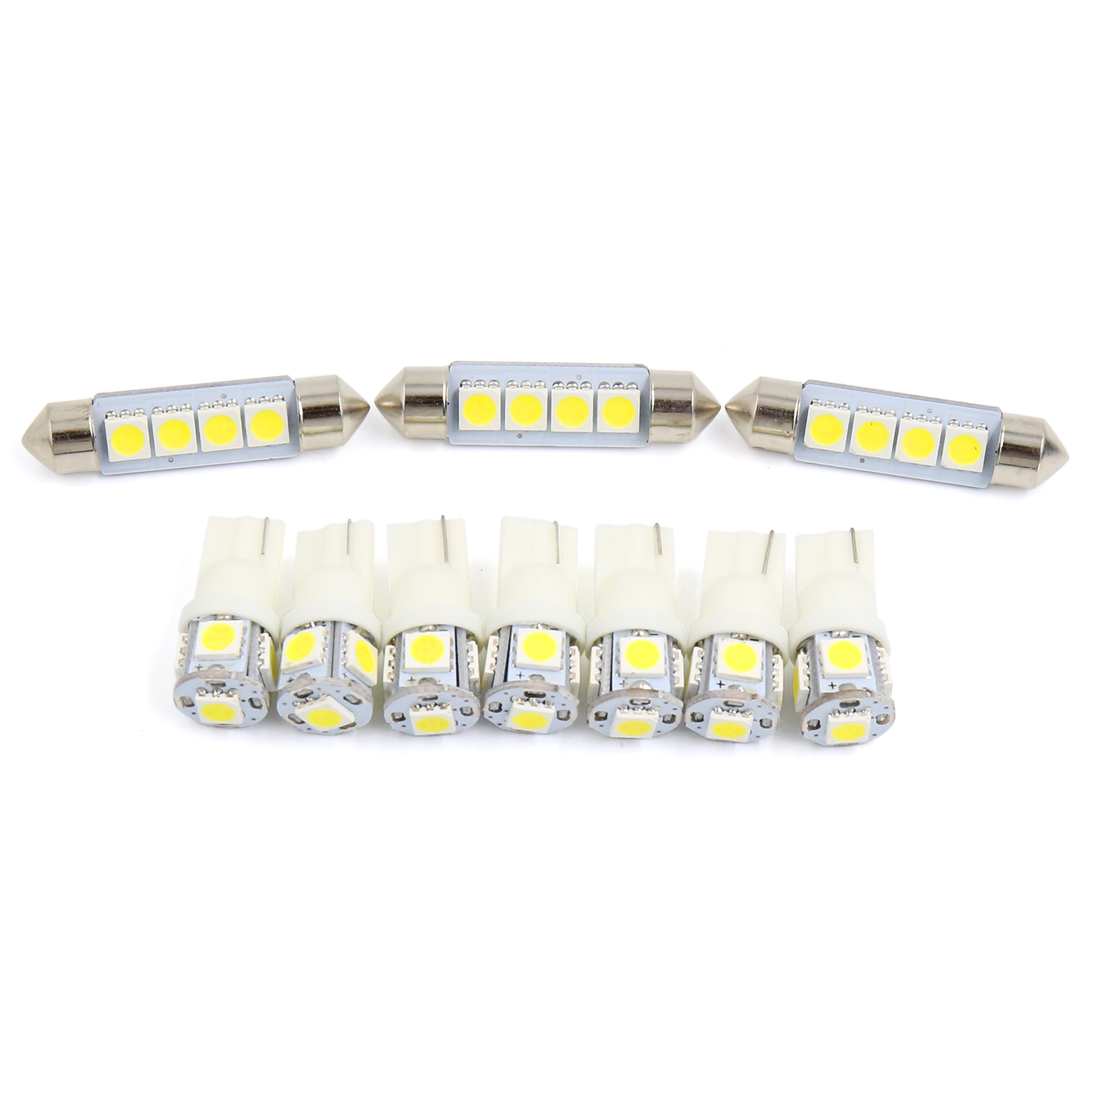 10PCS White Car Truck Cargo Area Lamp LED Interior Light Kit for Ford F150 Regular 2 Door 2009-2011